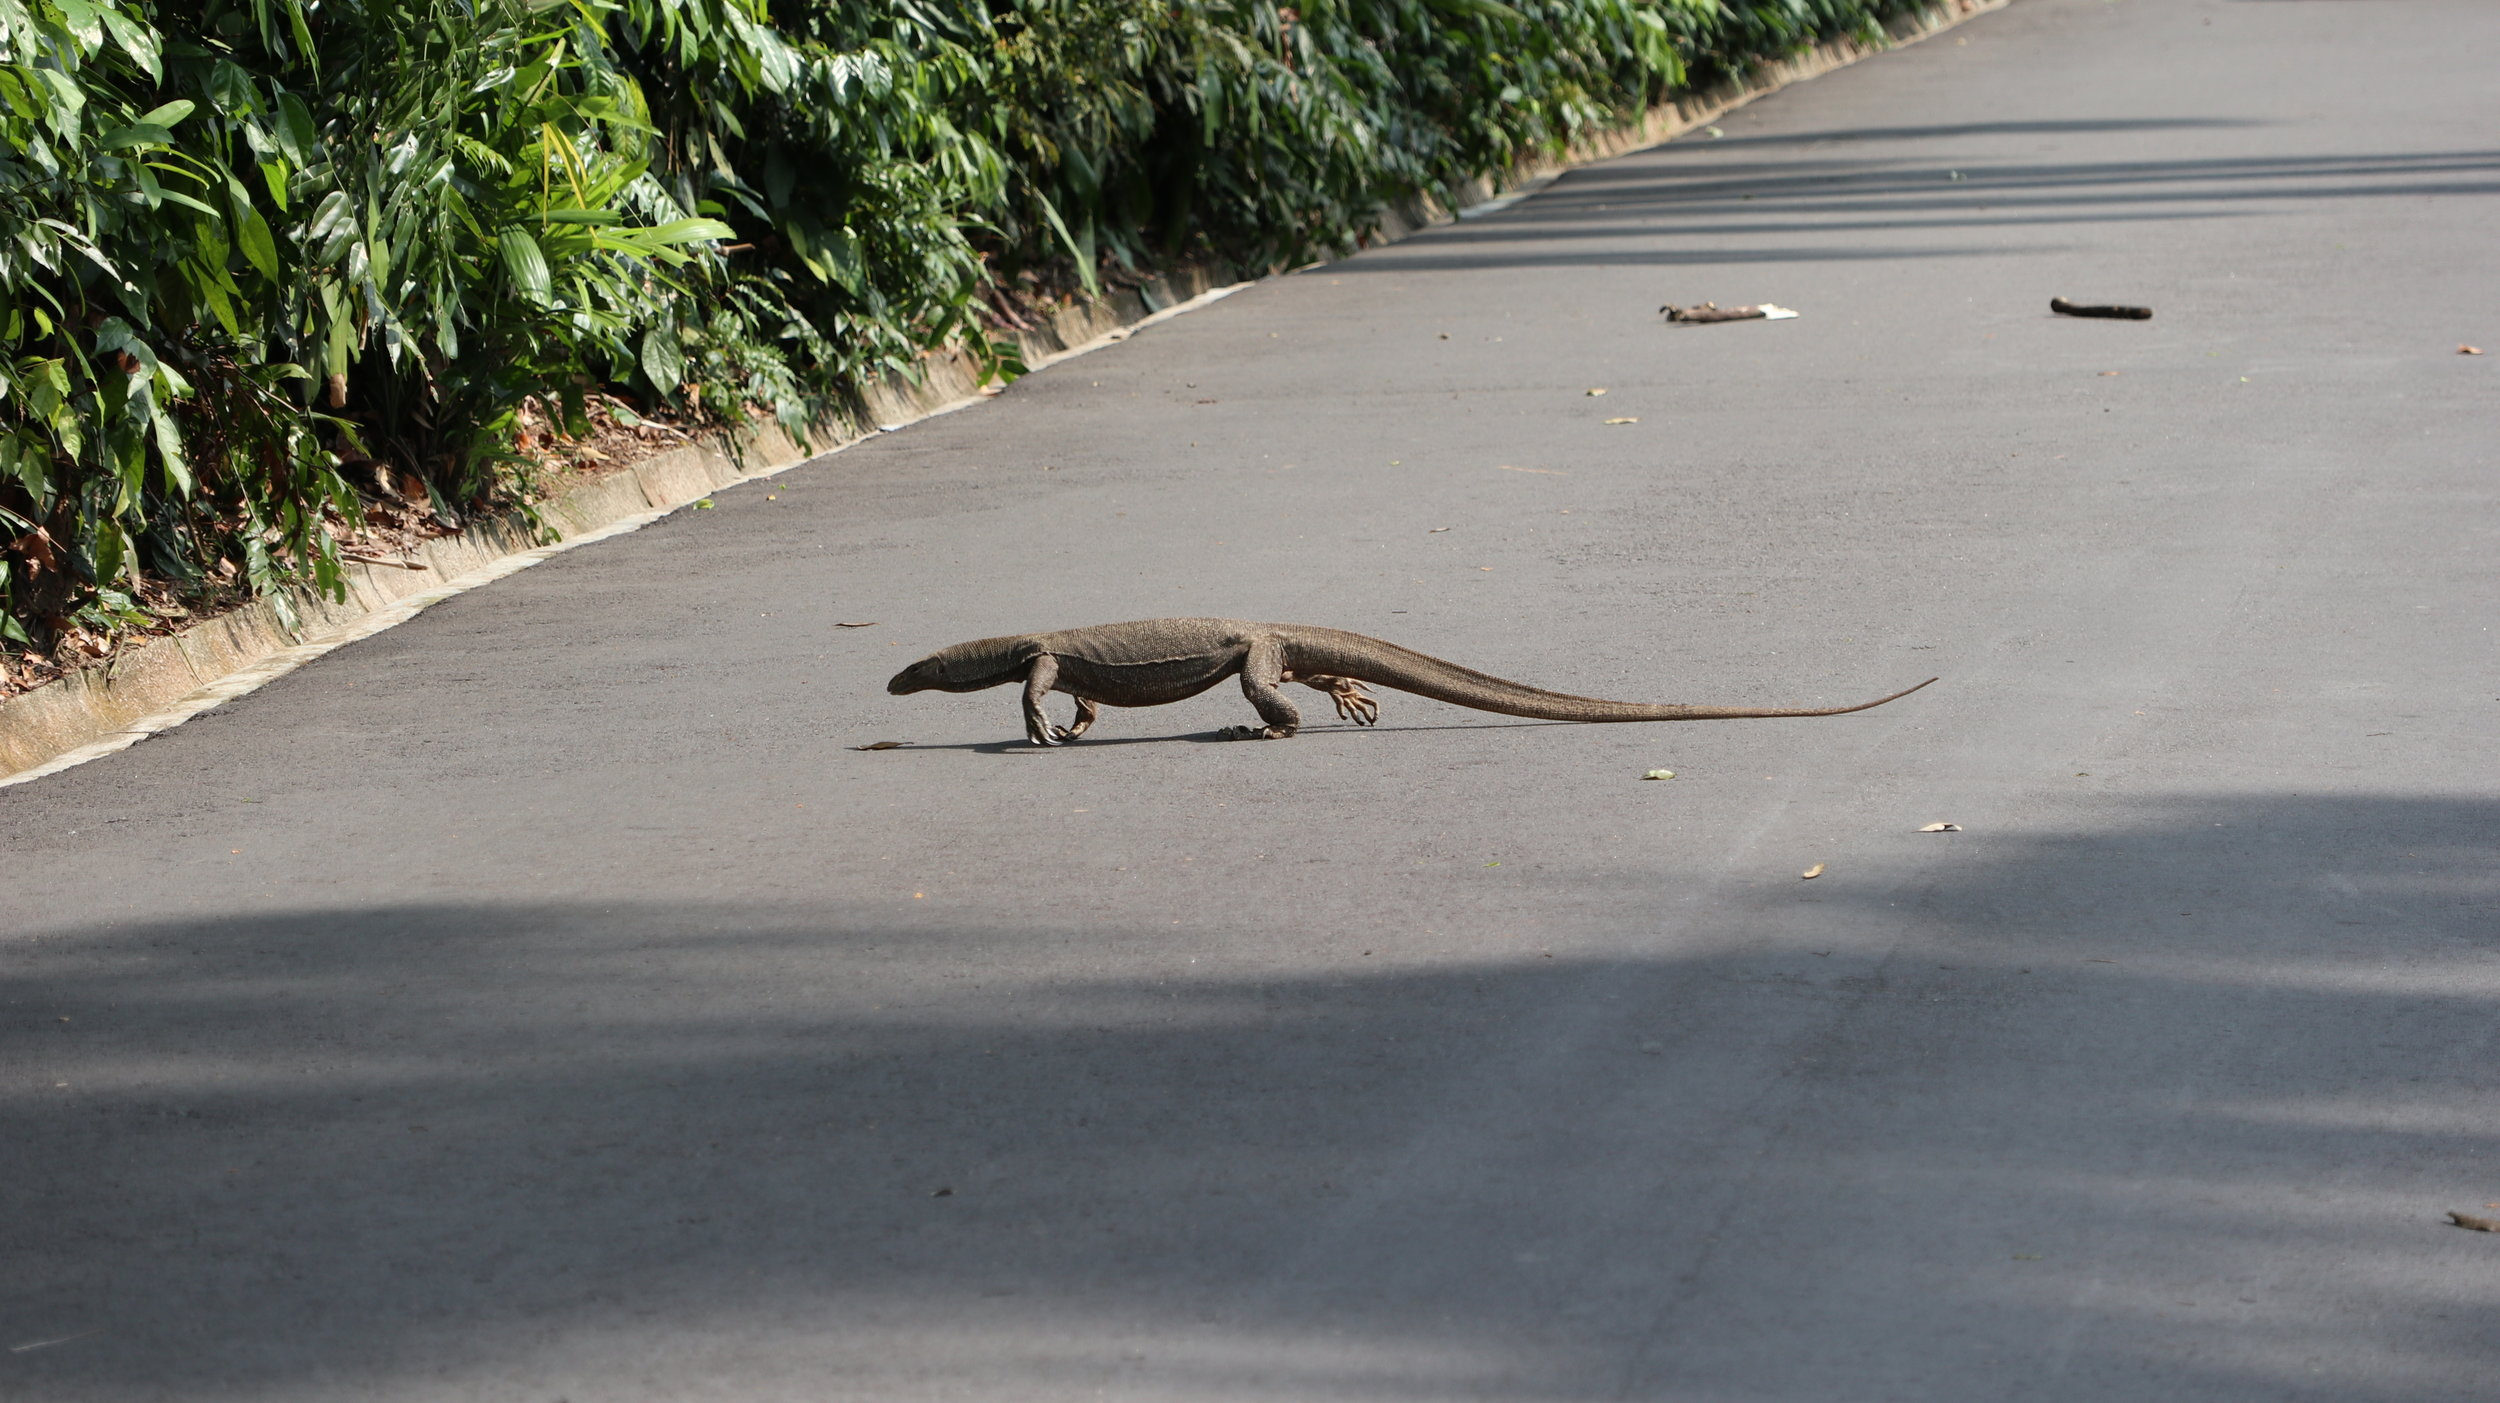 We gave this guy right-of-way at the Botanic Gardens